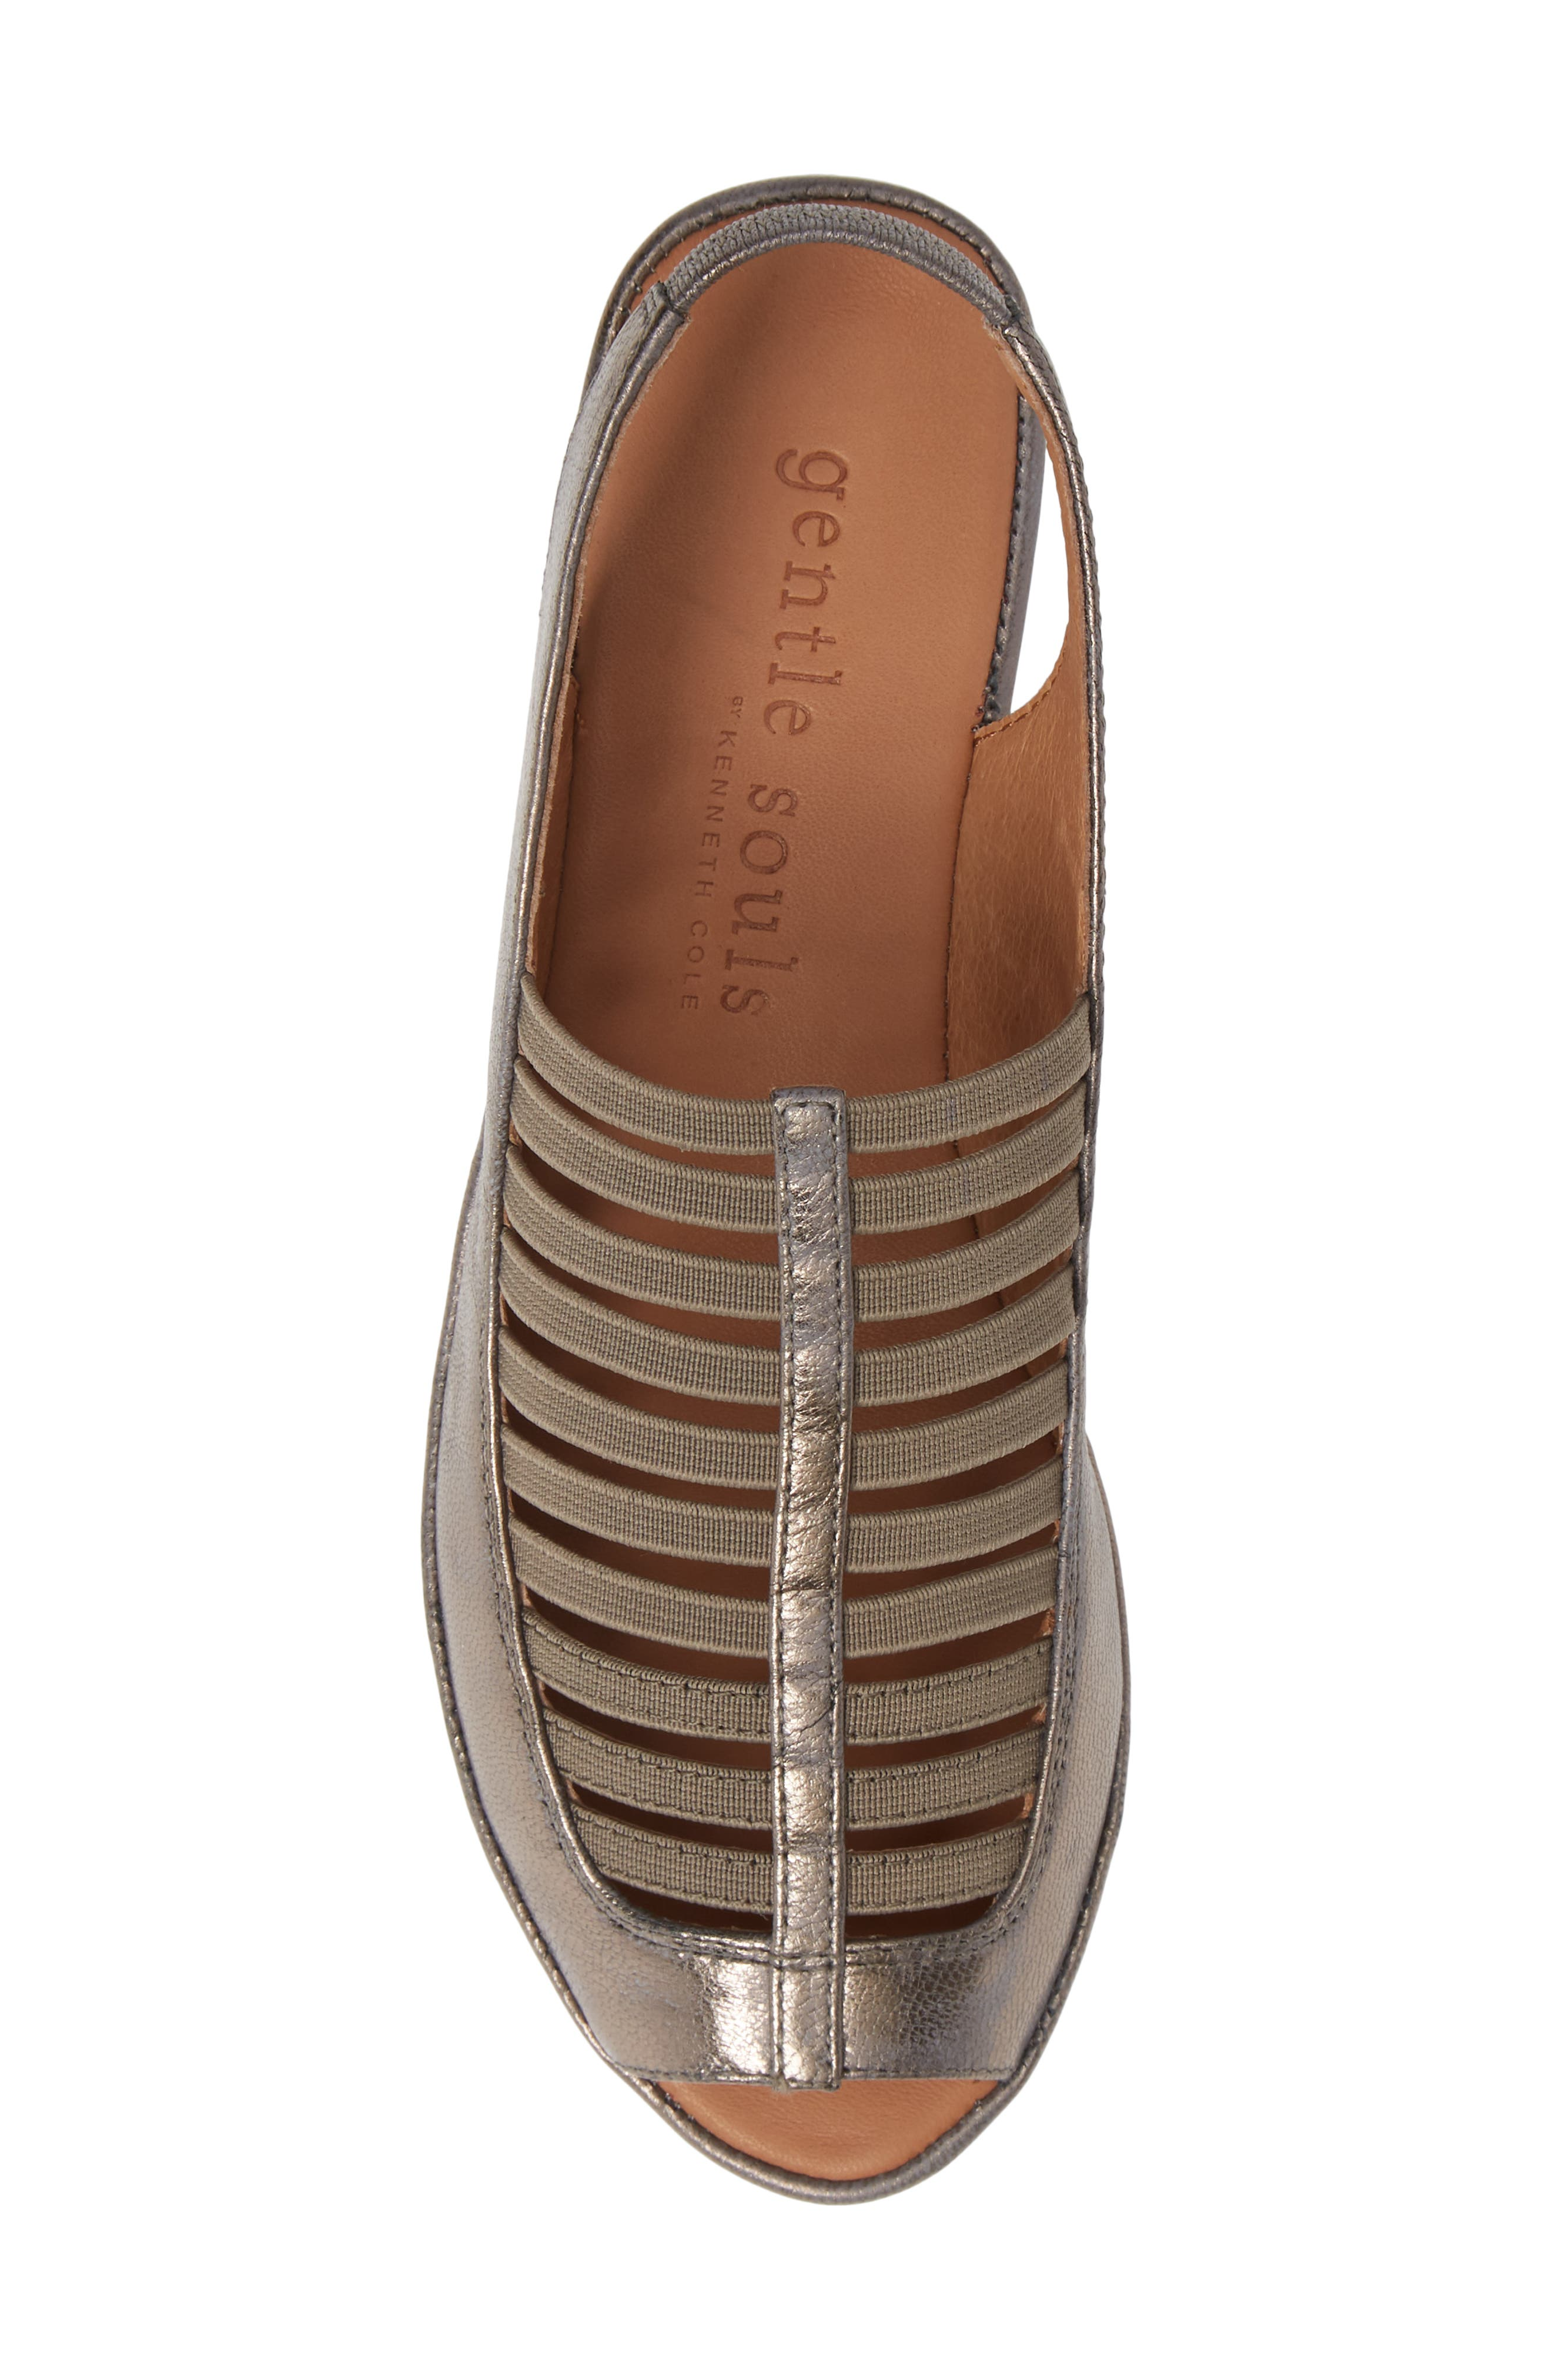 by Kenneth Cole 'Lee' Sandal,                             Alternate thumbnail 29, color,